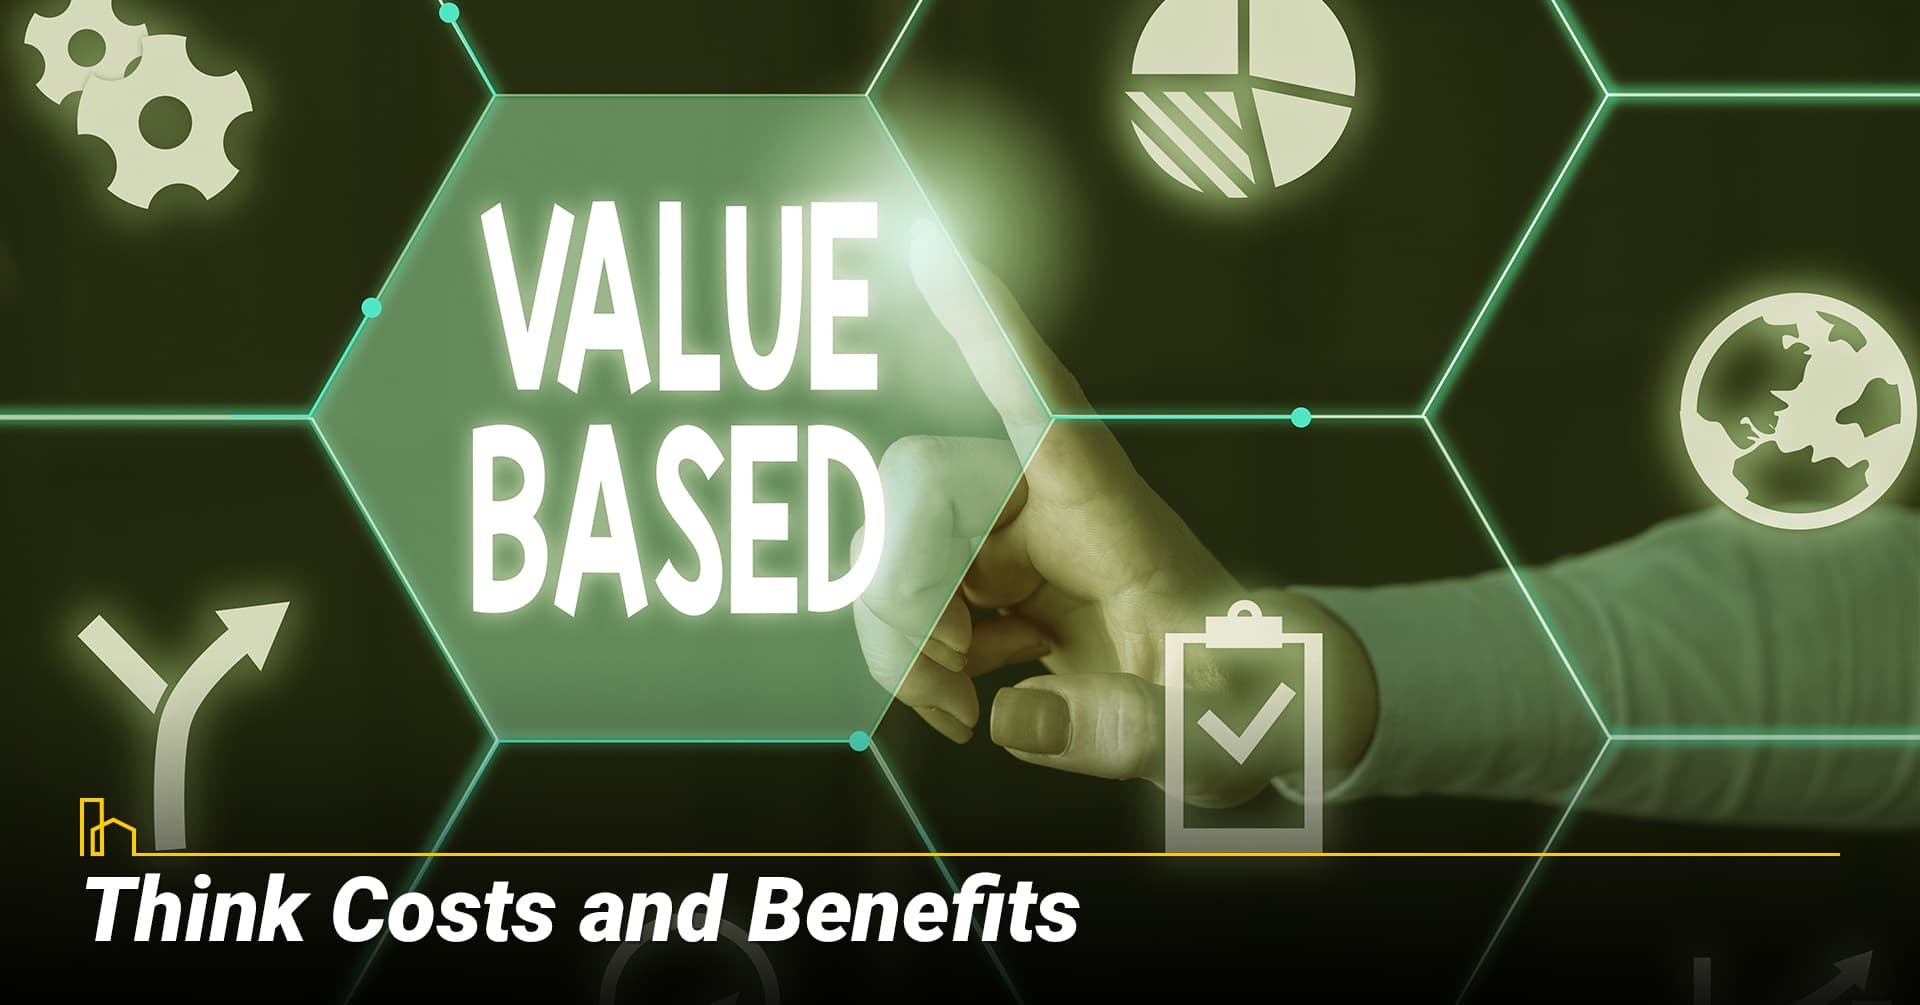 Think Costs and Benefits, Do your own analysis